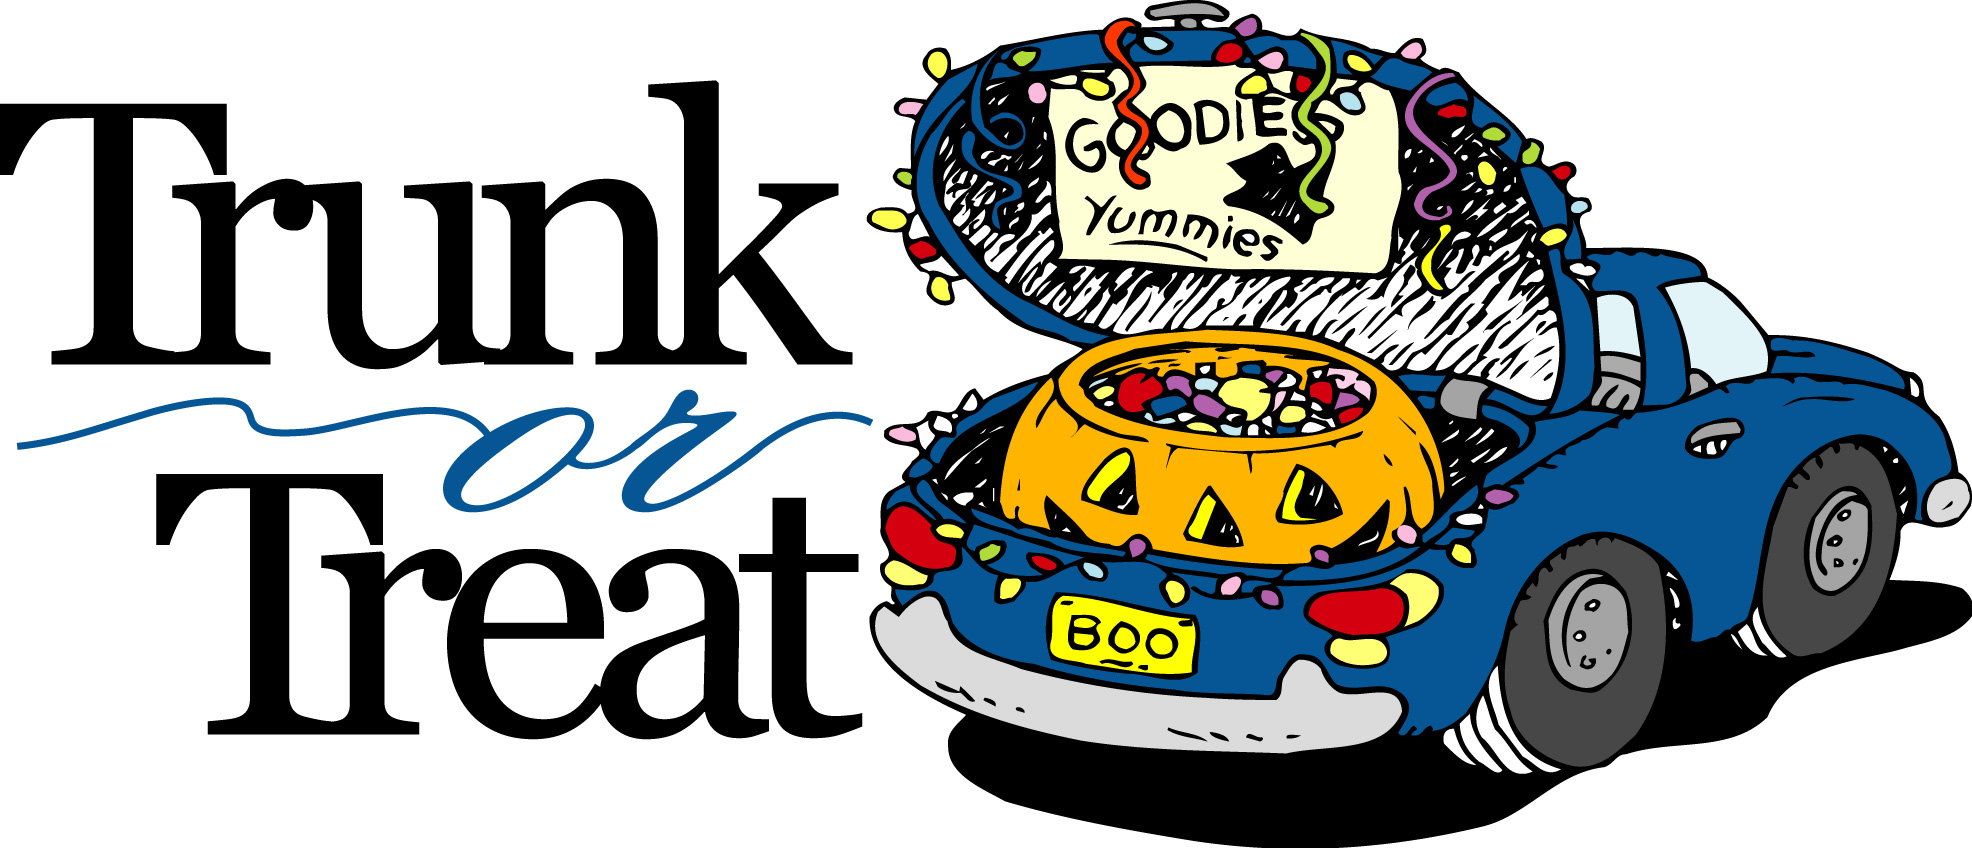 Free Trunk Or Treat Clipart, Download Free Clip Art, Free ... clip art free